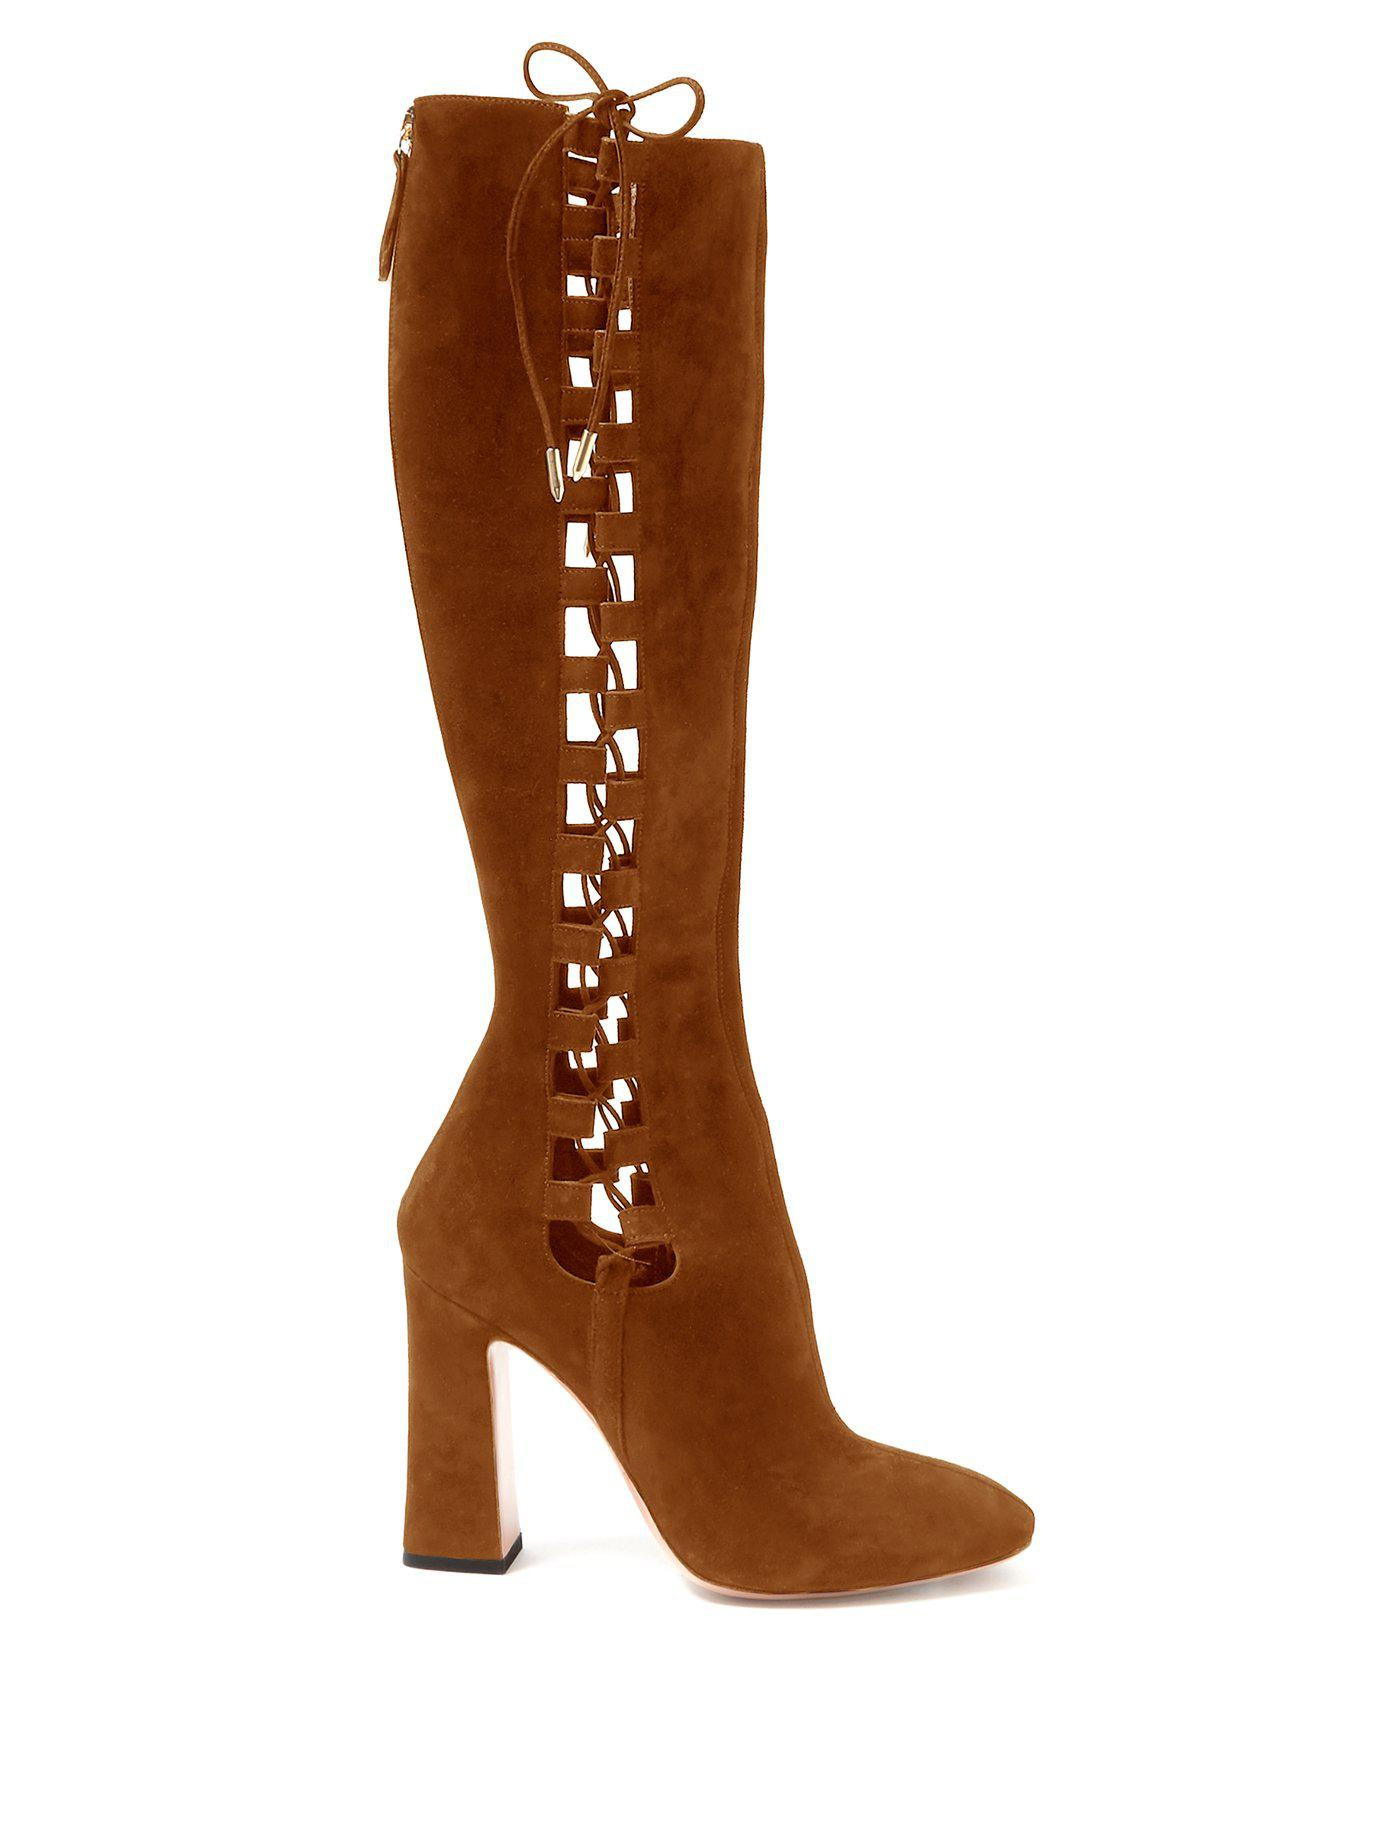 069ca9968d6 Lyst - Aquazzura Medina 105 Suede Knee High Boots in Brown